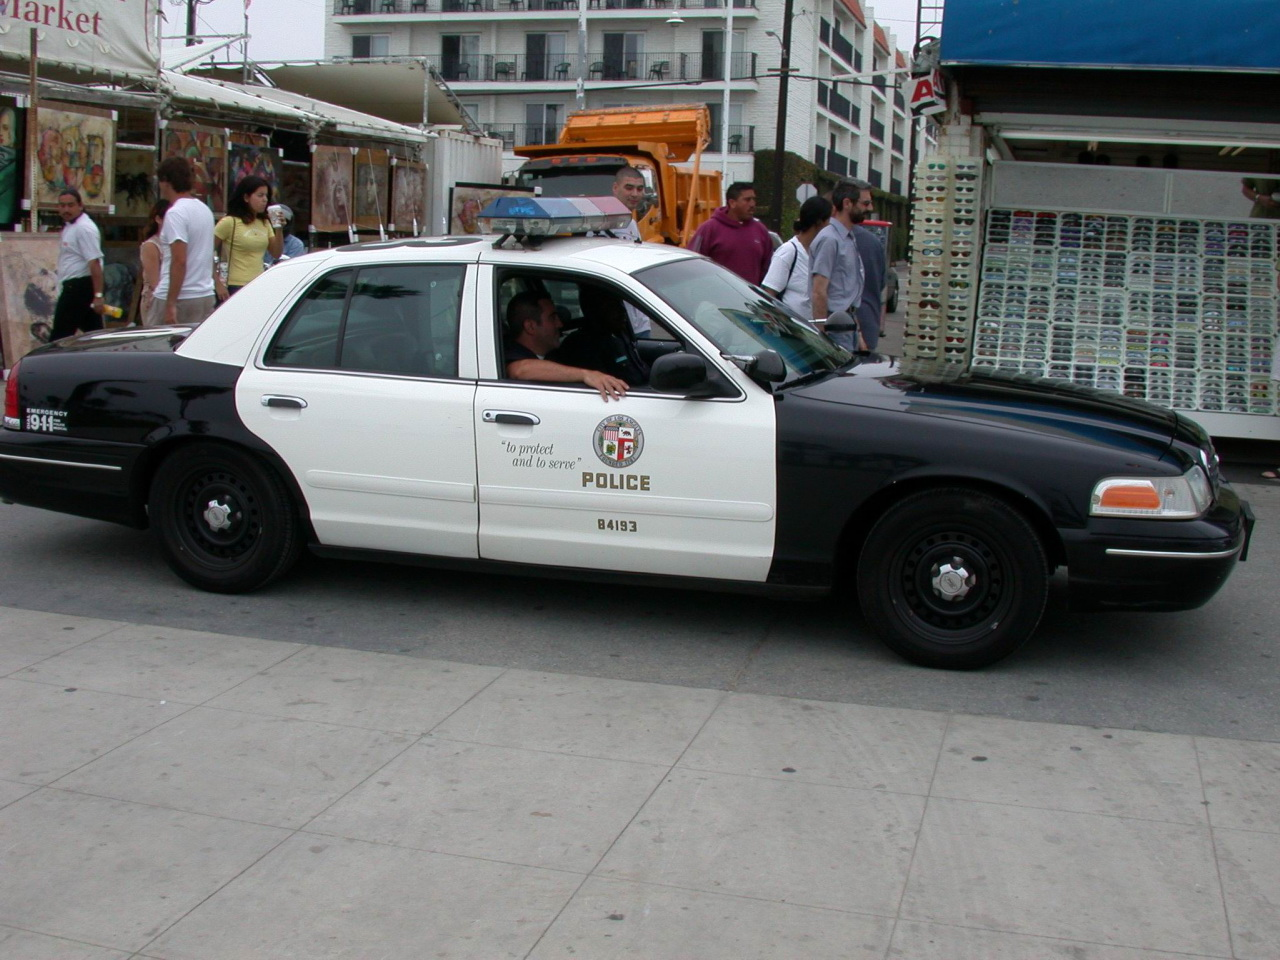 Color car los angeles - File Lapd Police Car Jpg